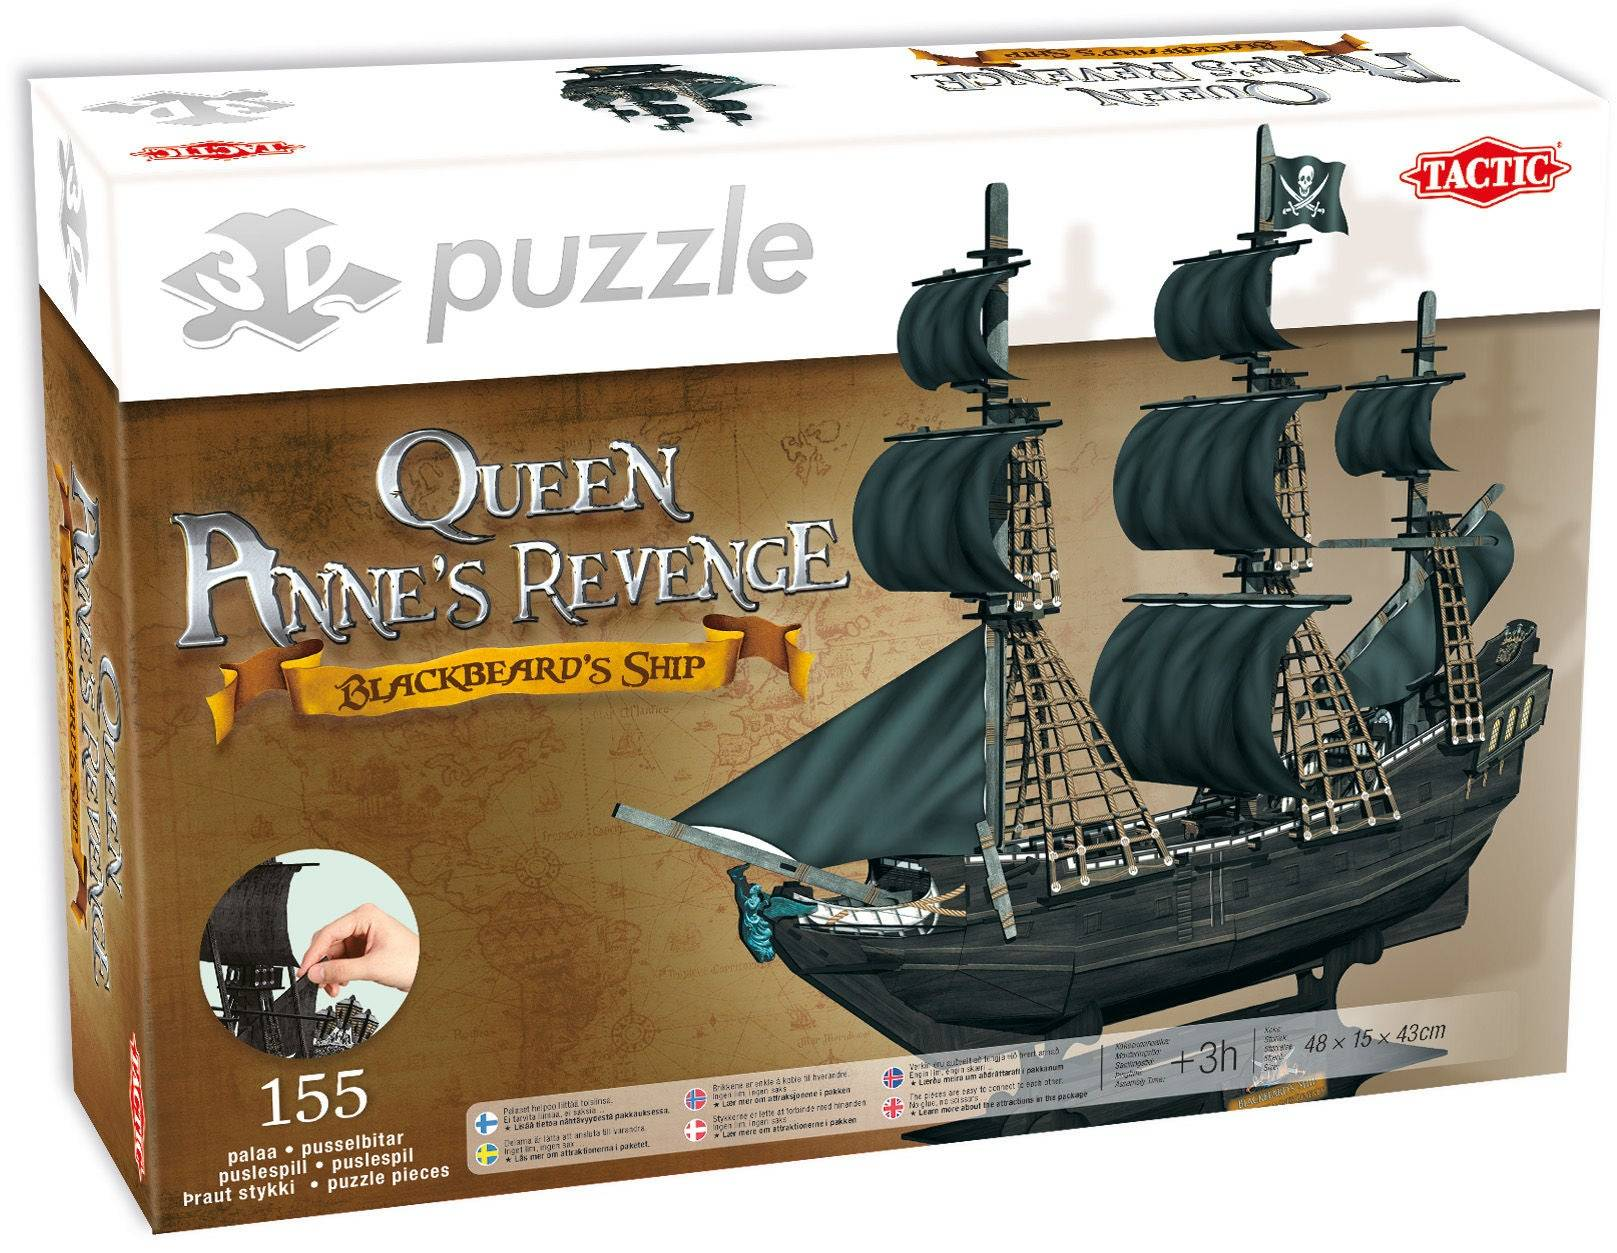 Tactic Puslespill 3D Puzzle The Queen Anne's Revenge